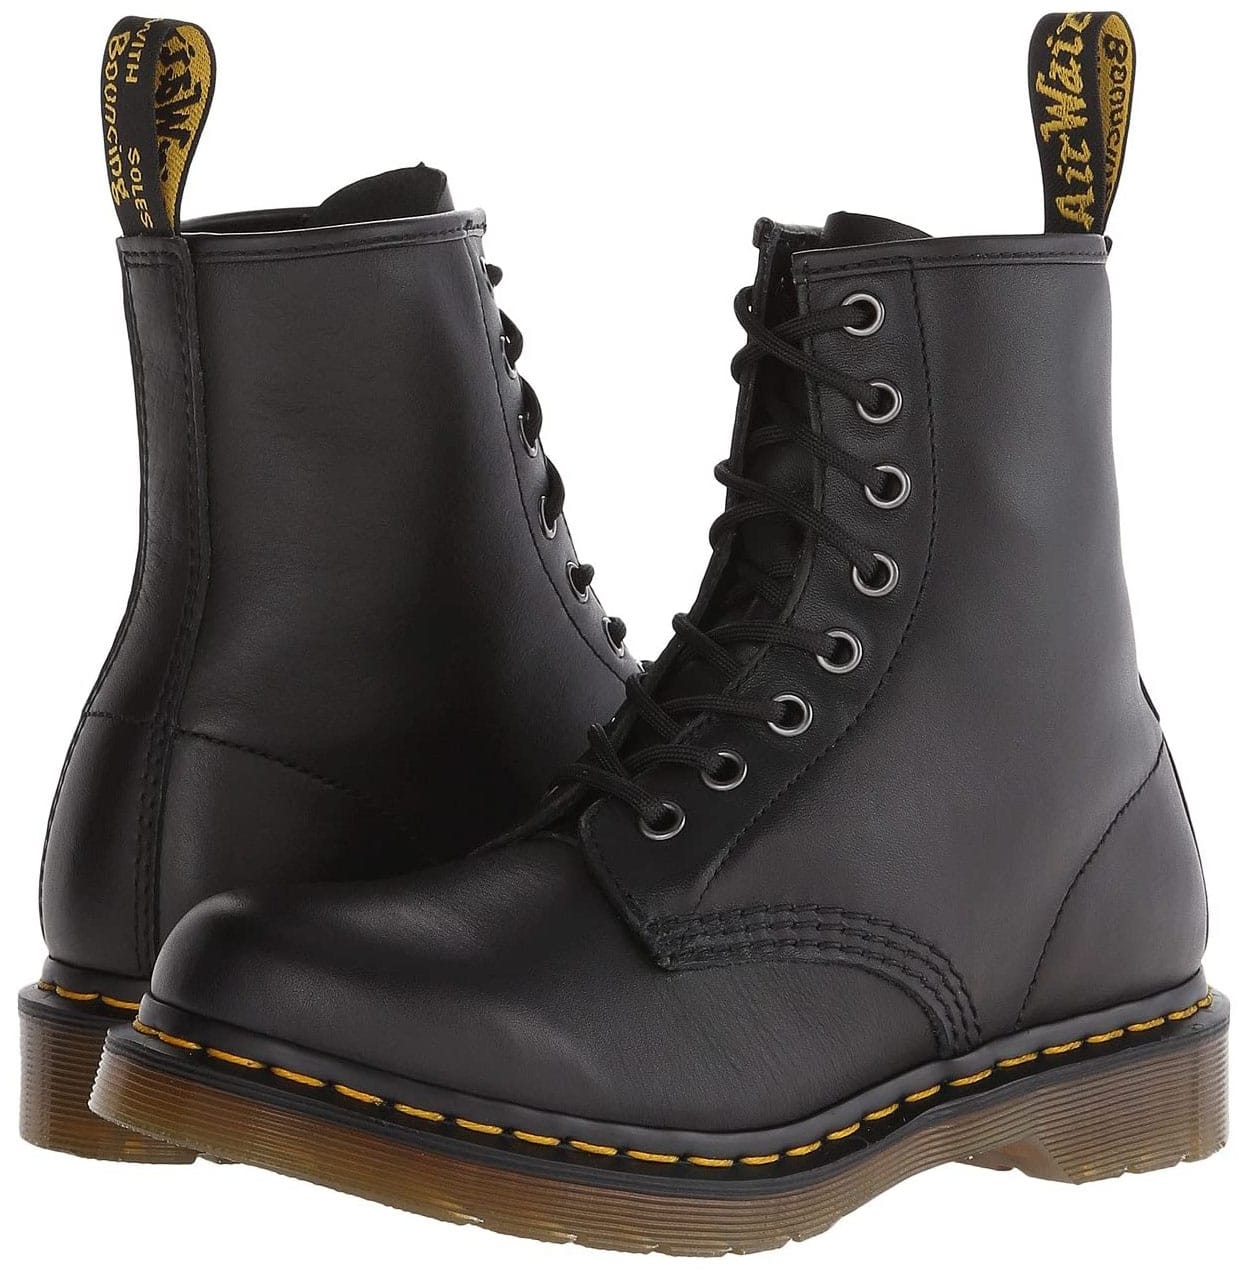 One of Dr. Martens' classic boot style with 8-Eye front, yellow stitching, and Airwair air-cushioned soles